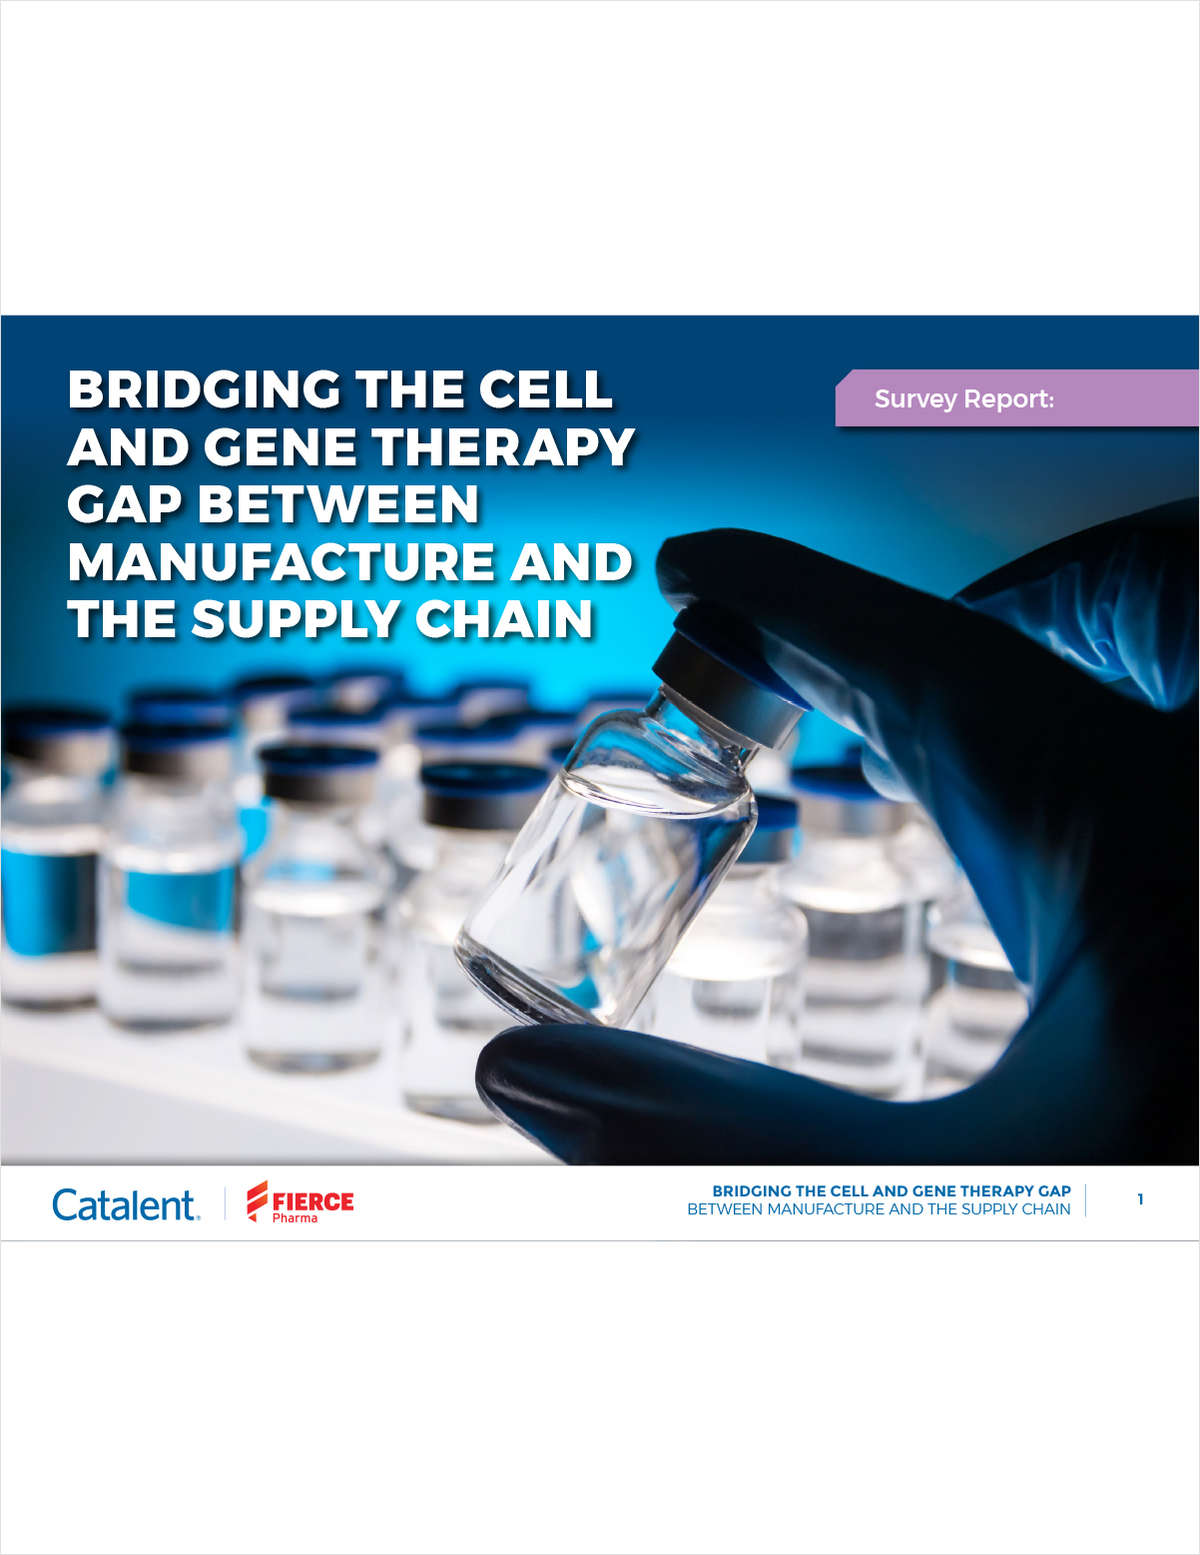 Bridging the Cell and Gene Therapy Gap Between Manufacture and the Supply Chain